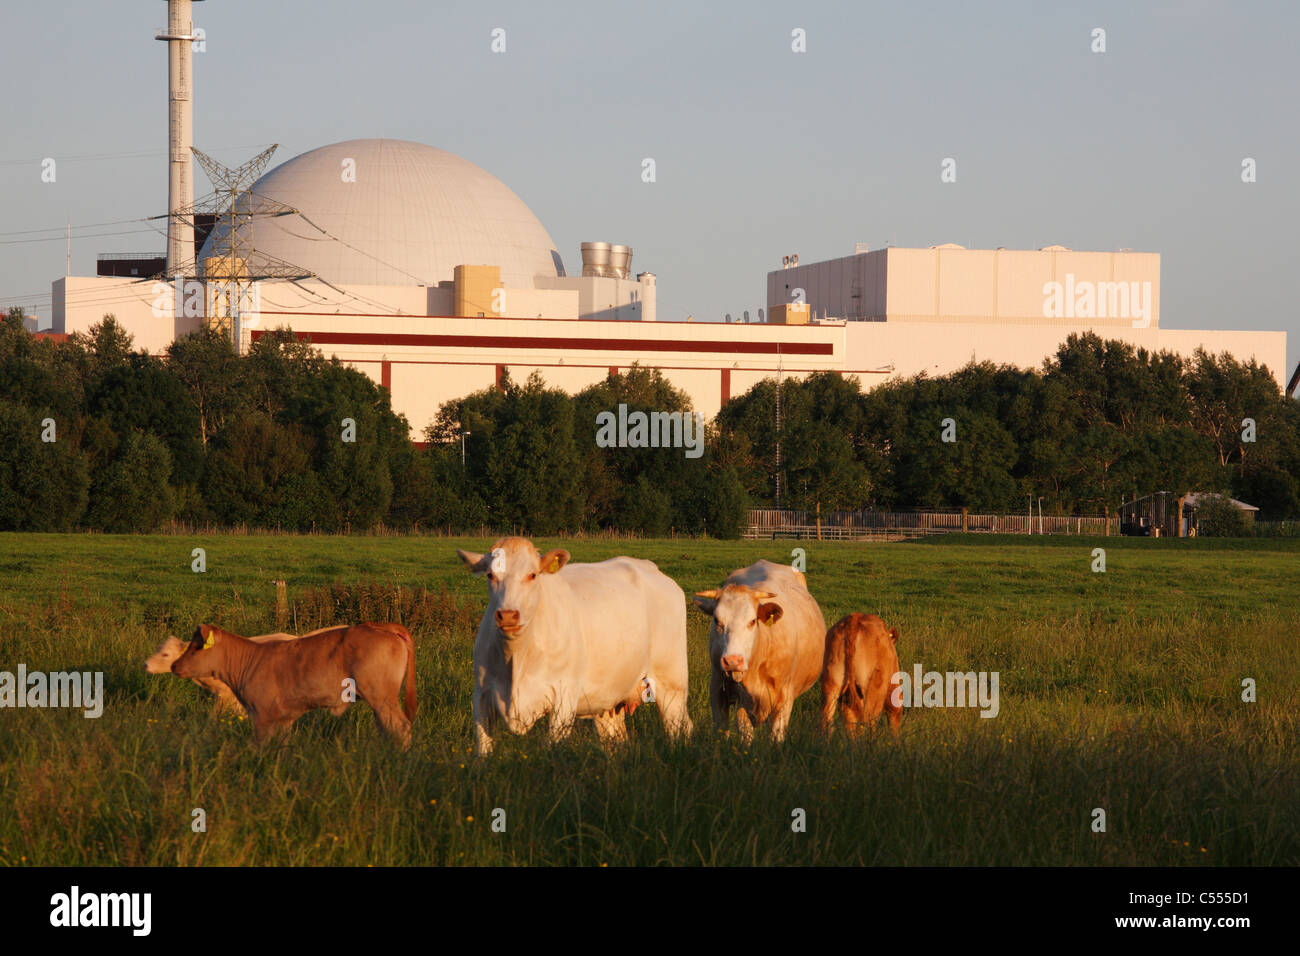 nuclear power station in Brokdorf, Germany Stock Photo